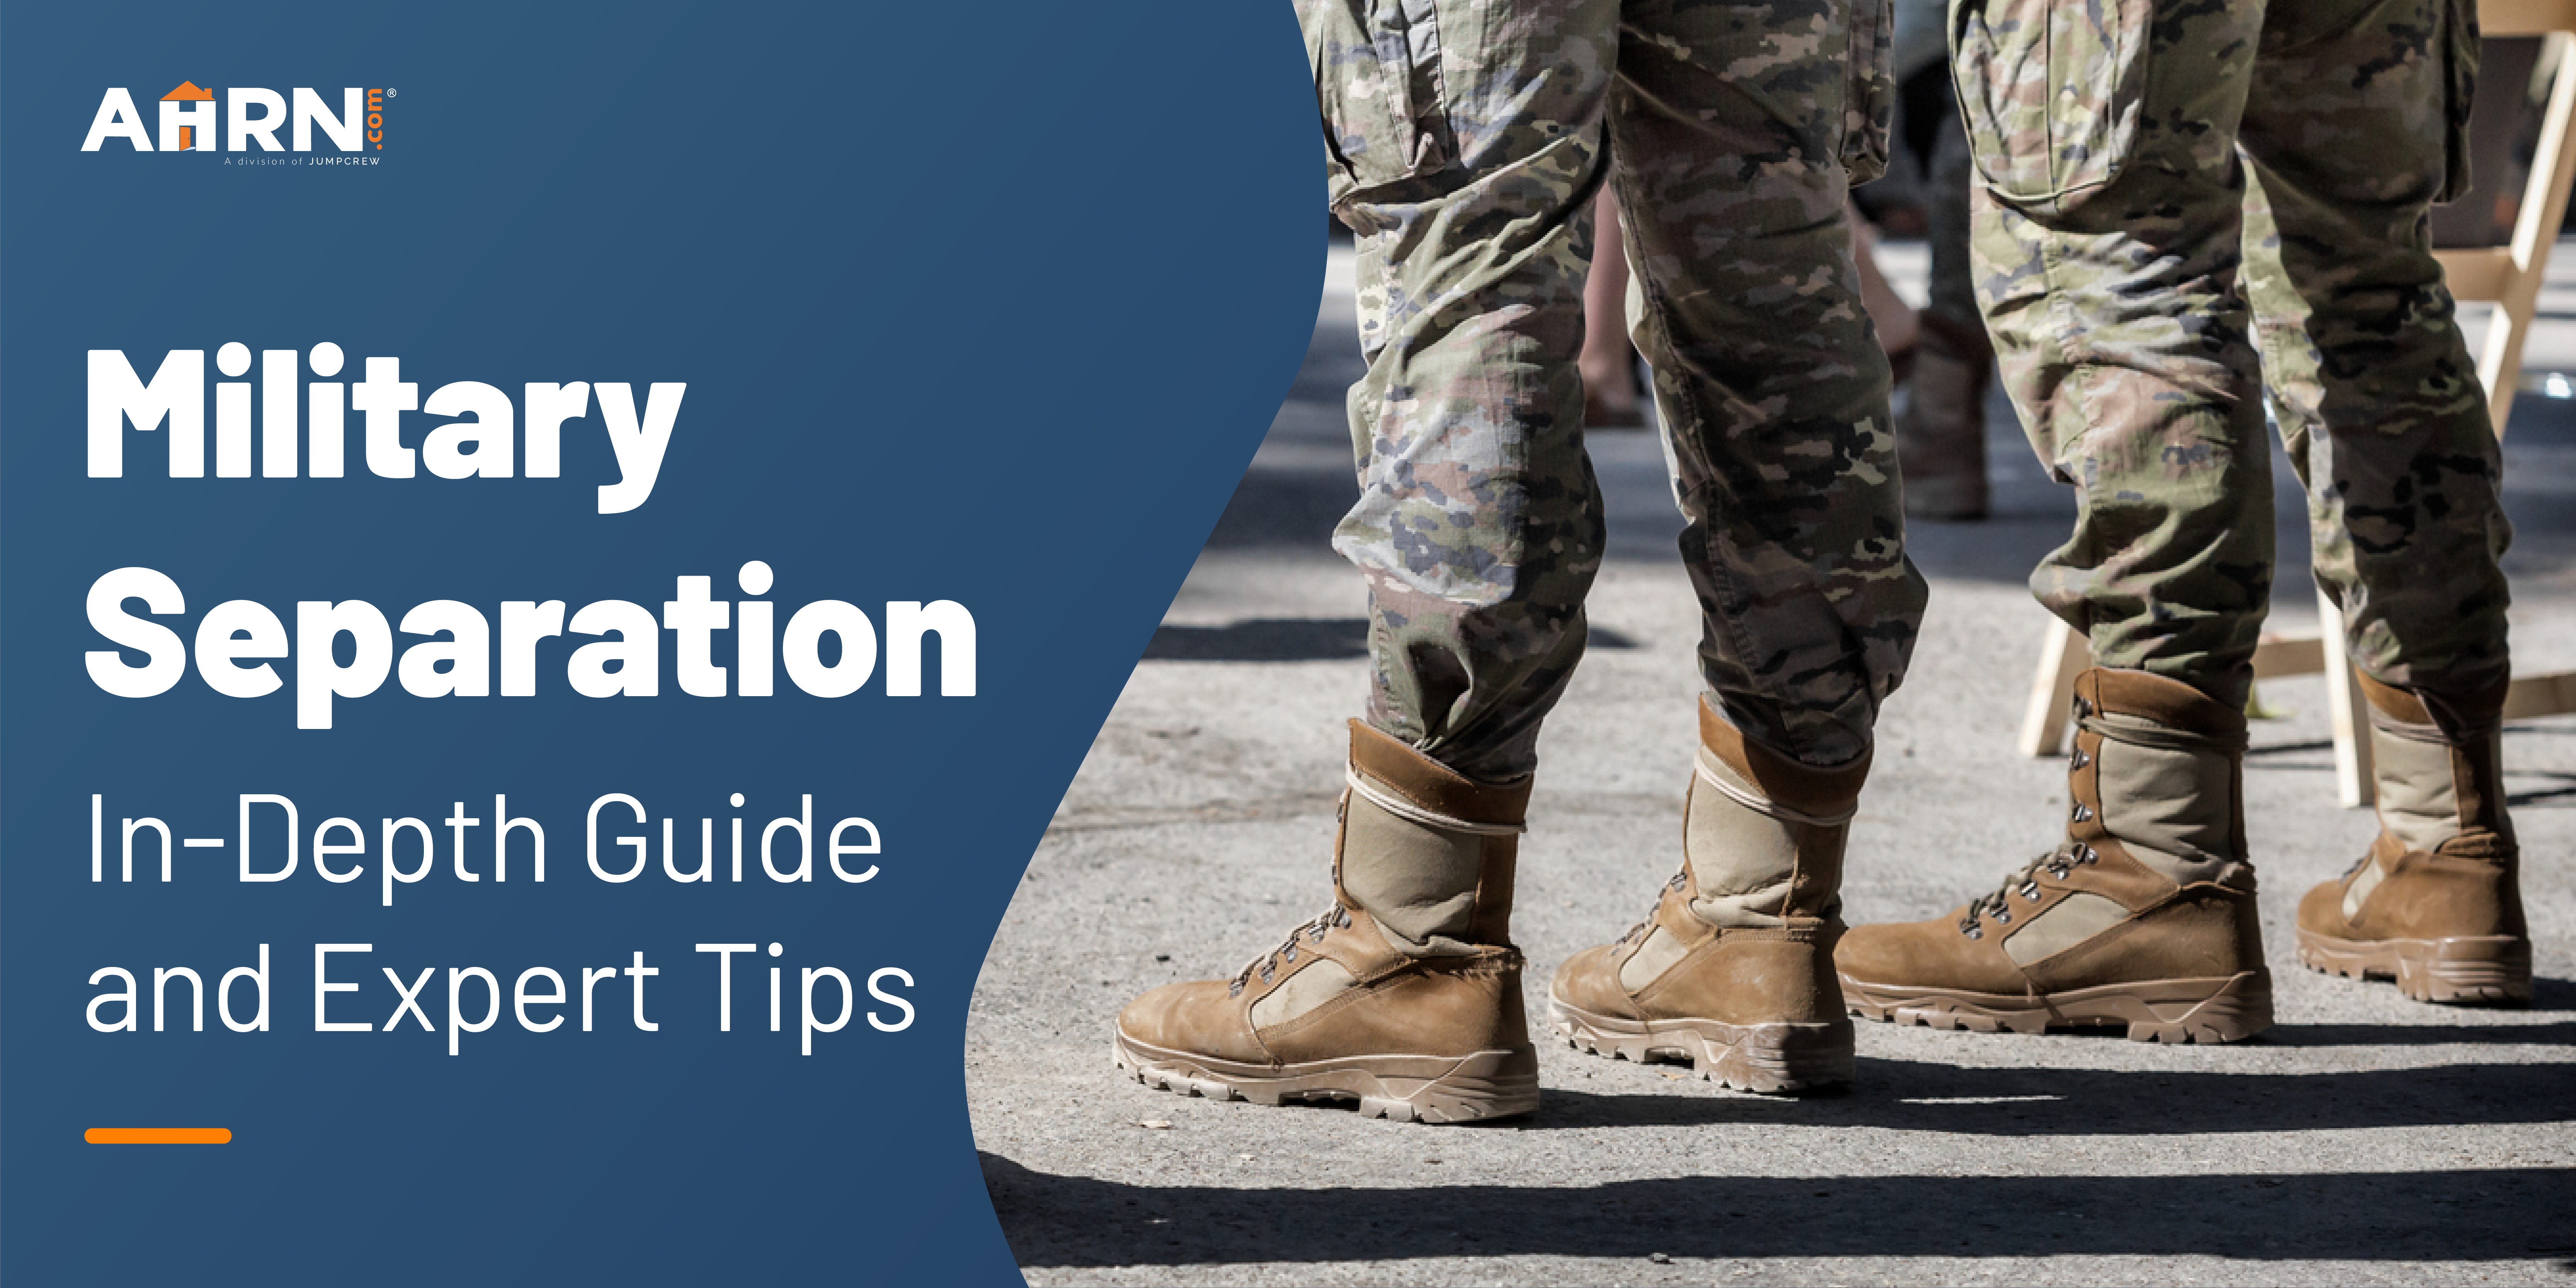 Military Separation: In-Depth Guide & Expert Tips